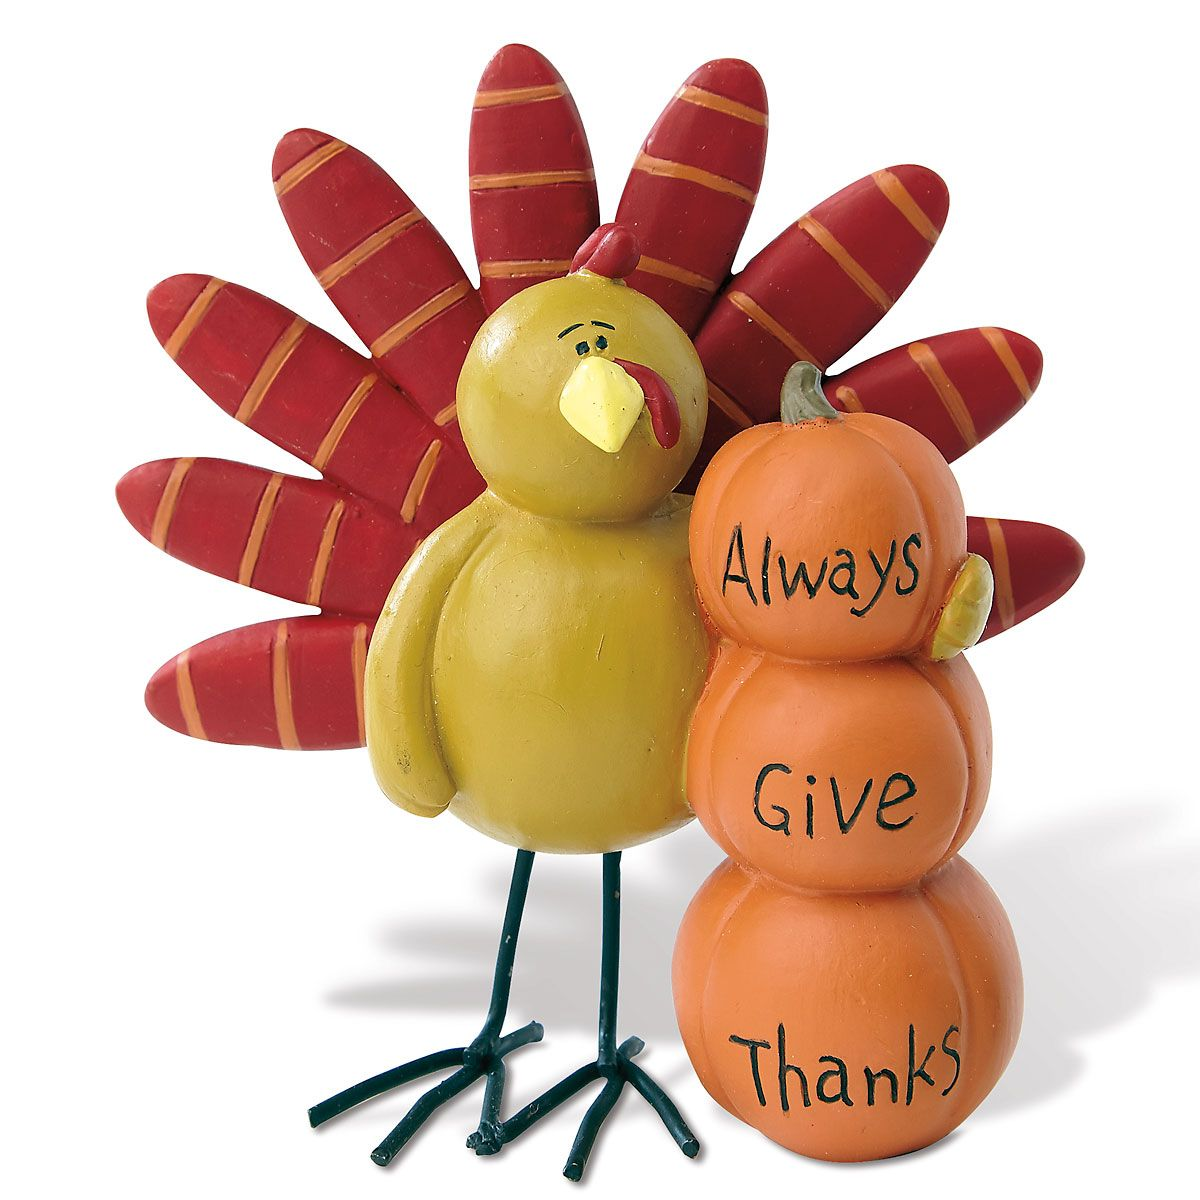 Always Give Thanks Figurine